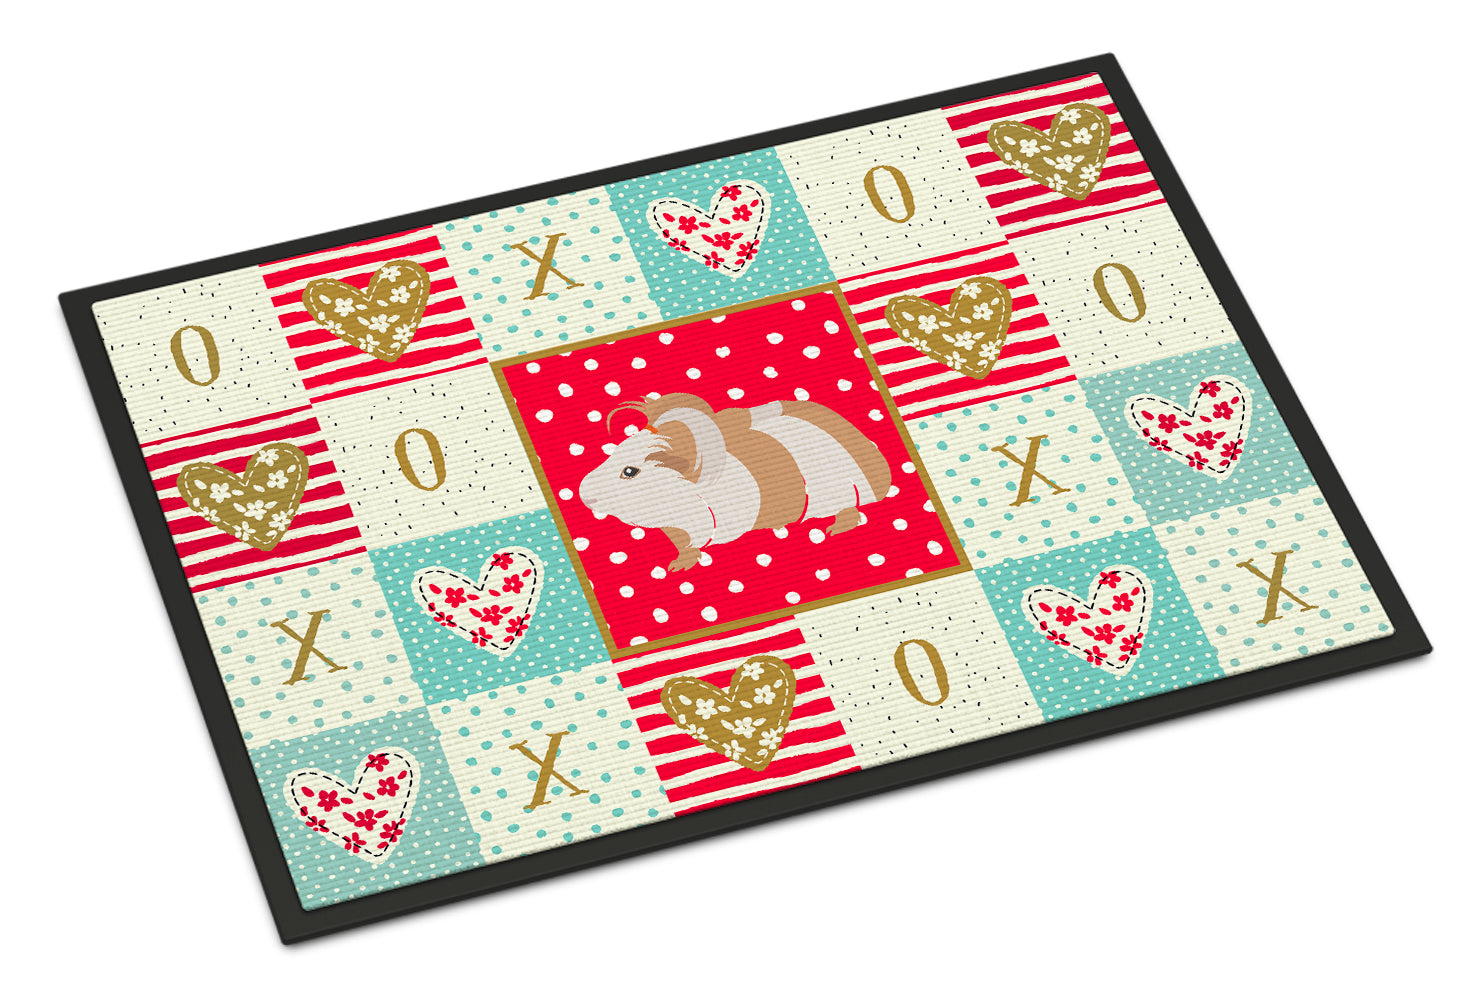 Silkie Guinea Pig Love Indoor or Outdoor Mat 18x27 CK5434MAT by Caroline's Treasures